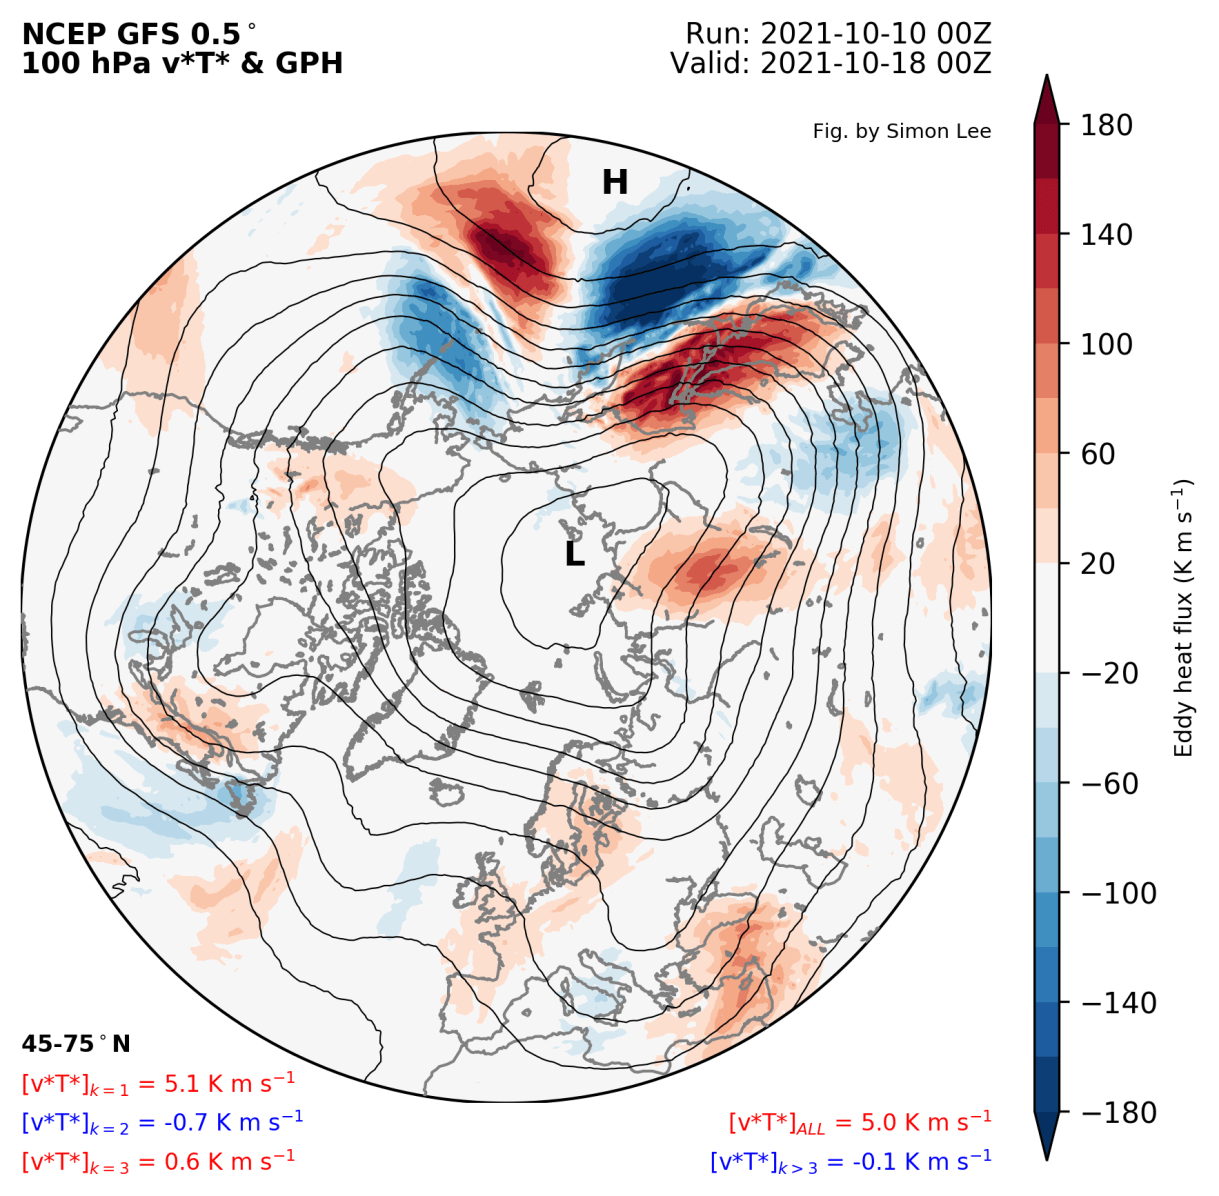 wave-activity-and-heat-flux-forecast-fall-winter-2021-2022-united-states-europe